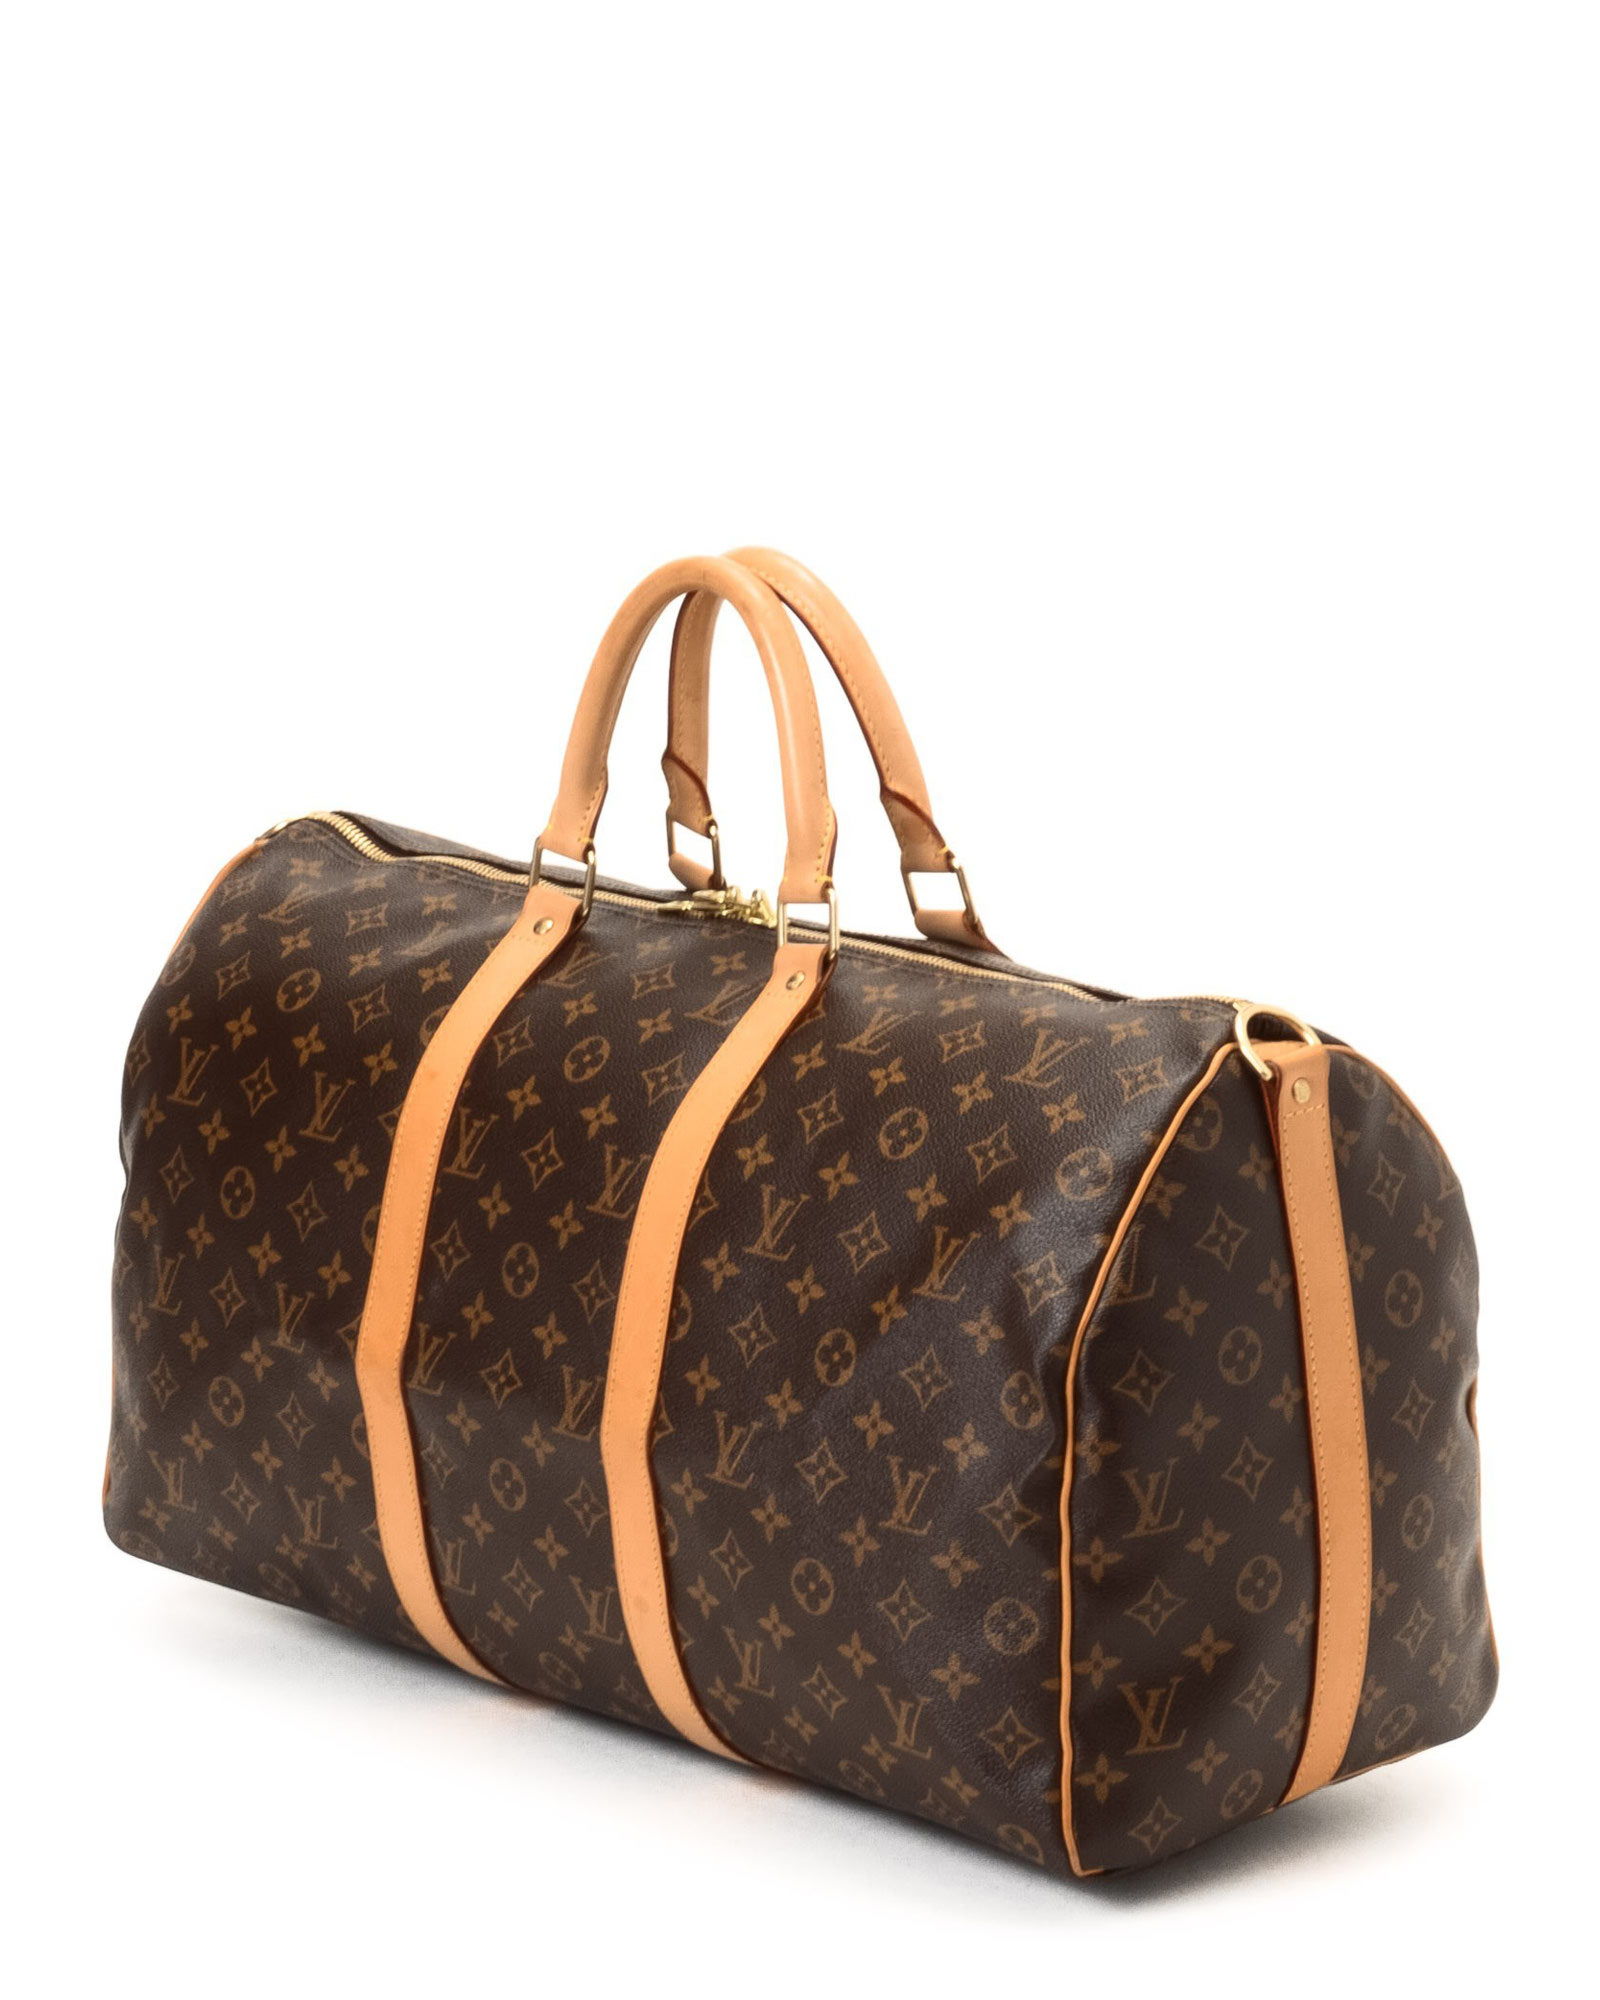 ea3b2451e Best Louis Vuitton Bags For Travel | Stanford Center for Opportunity ...